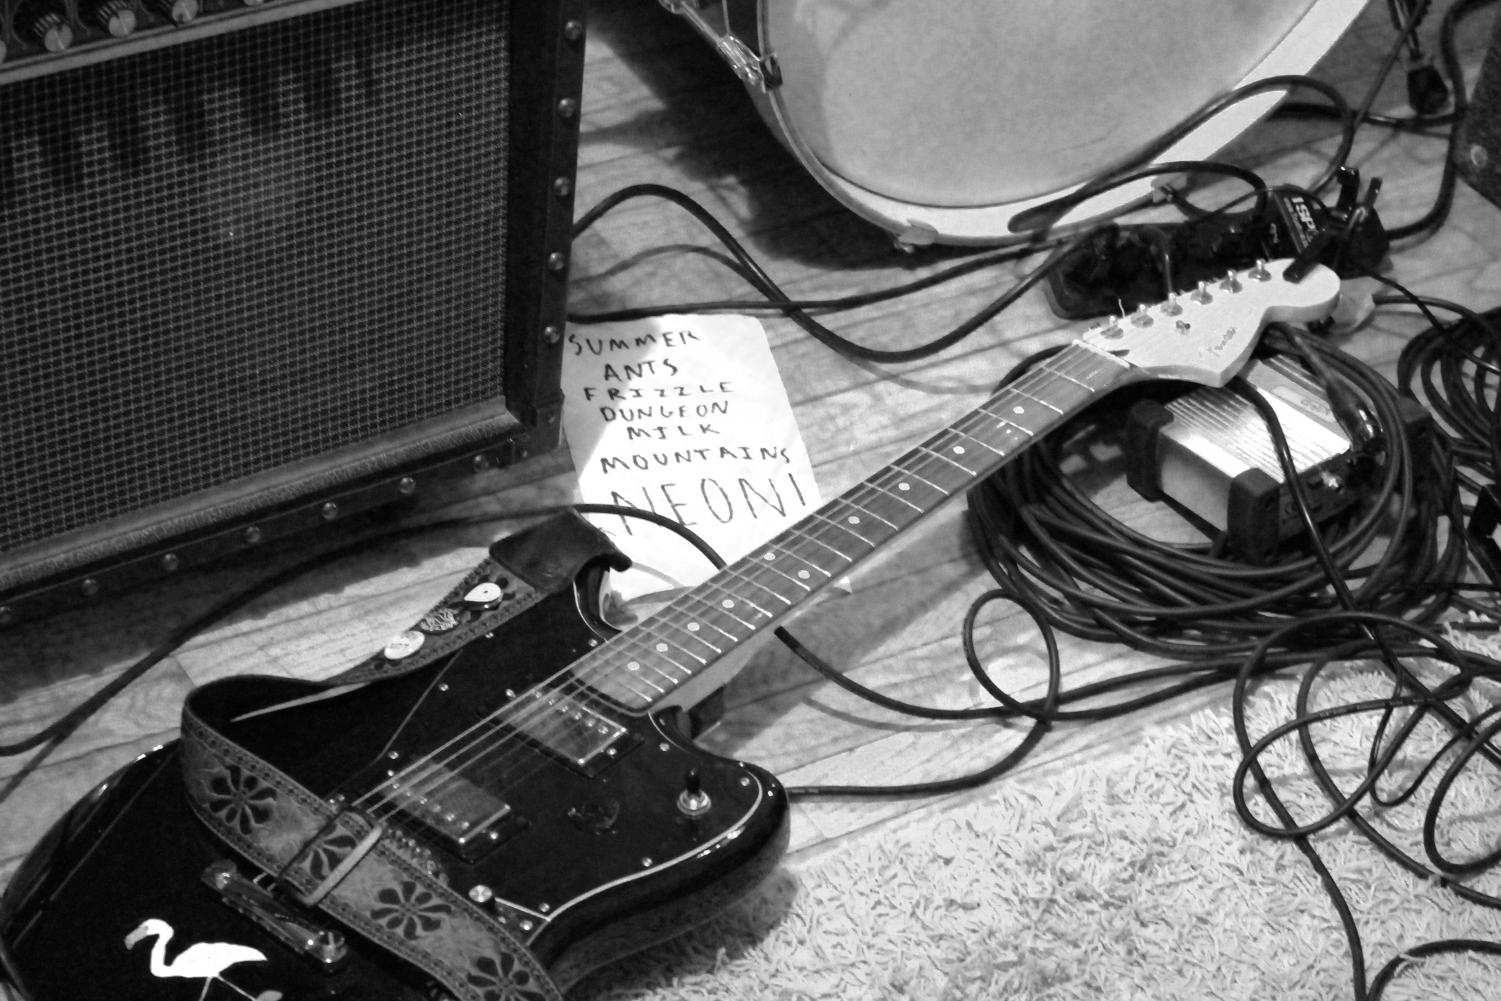 Freshman Tre Byers' guitar next to the night's set list. Byers and his band Dodging played a 30 minute set at a house show in Lawrence on Feb. 3.